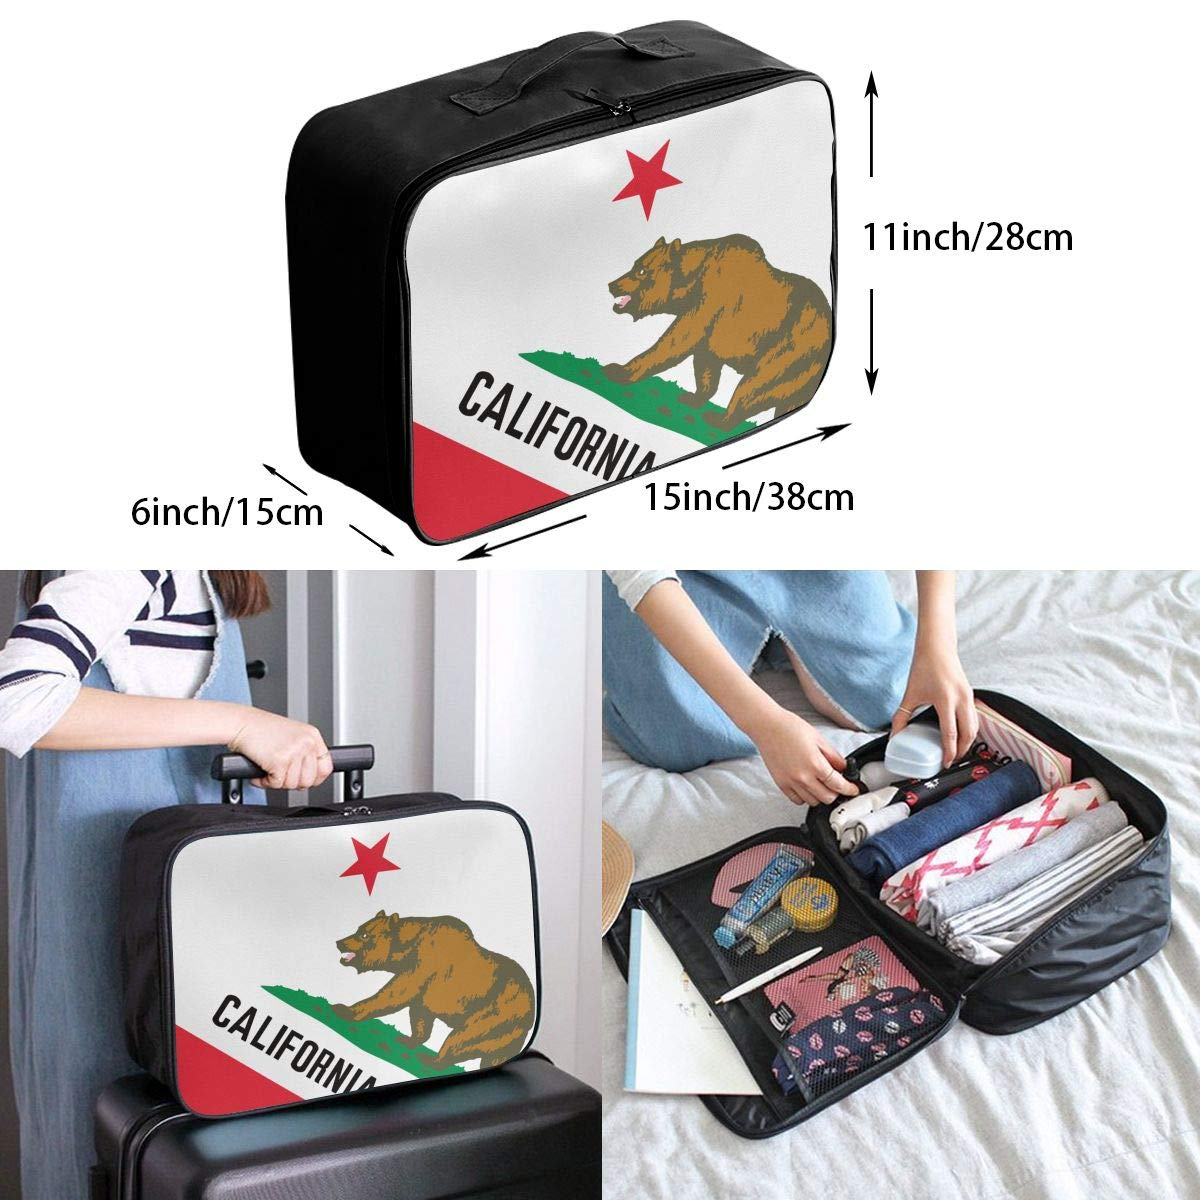 YueLJB California State Flag Lightweight Large Capacity Portable Luggage Bag Travel Duffel Bag Storage Carry Luggage Duffle Tote Bag